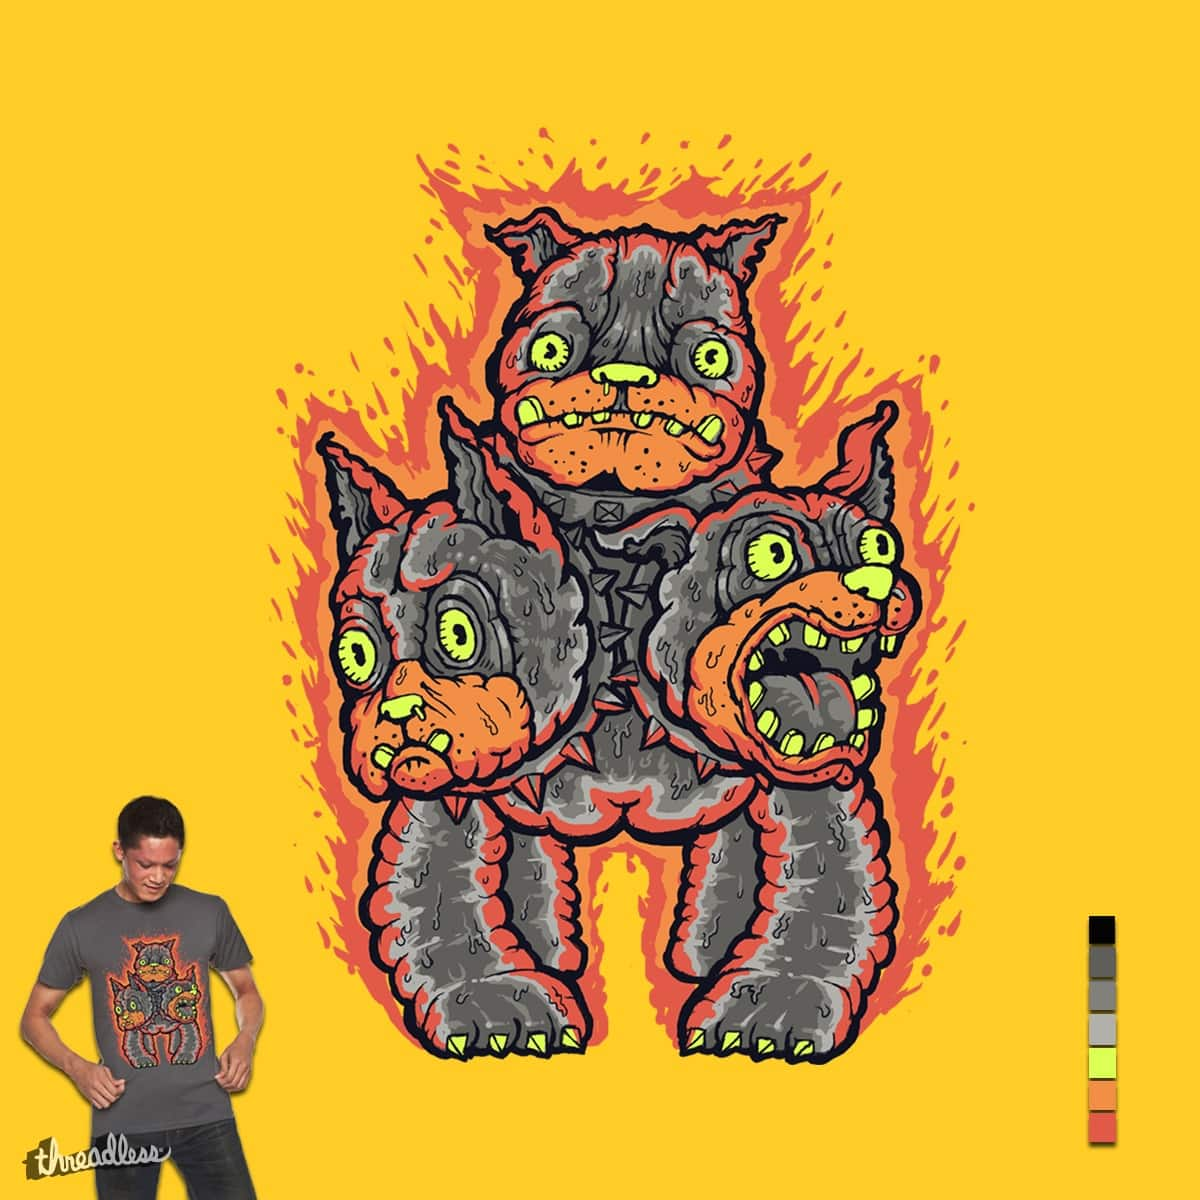 Hot in Hell ! by Villainmazk on Threadless